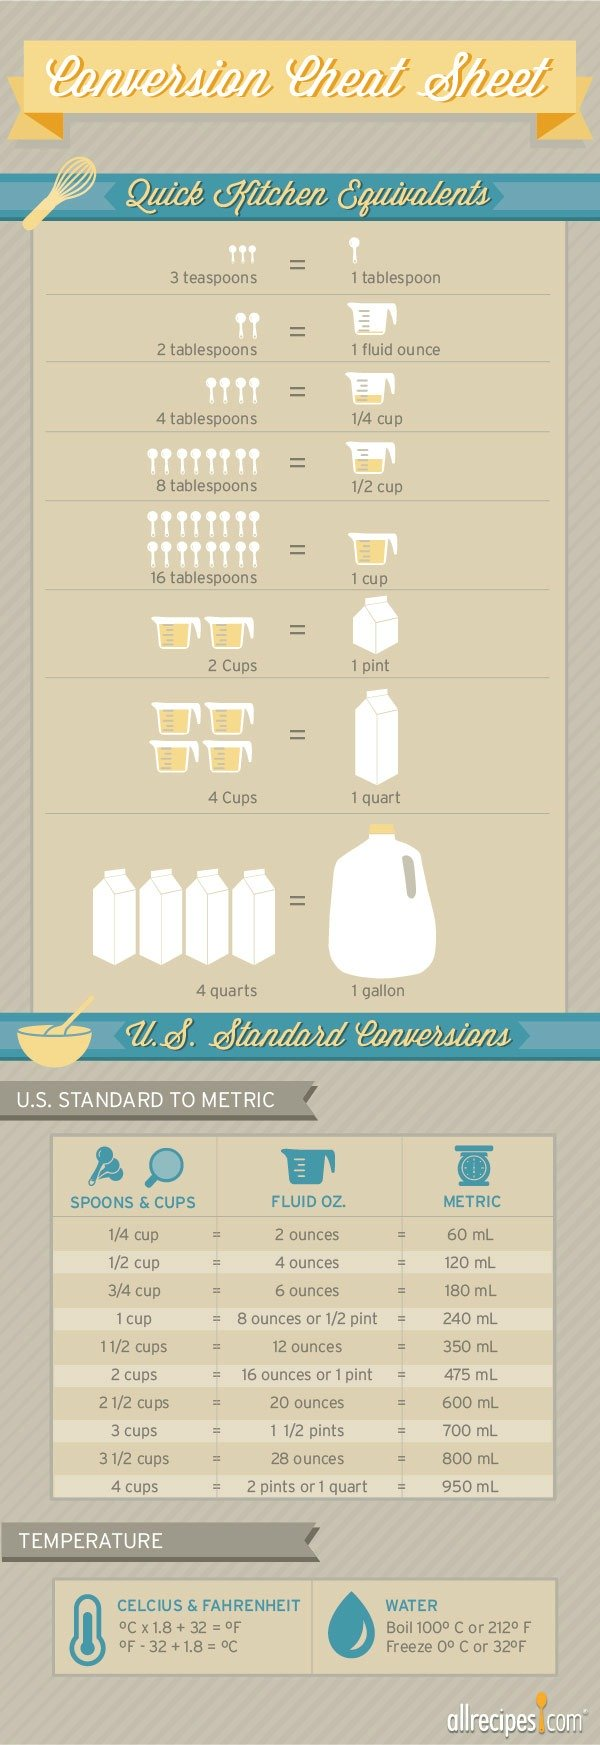 Ounces To Cups And Other Cooking Conversions | Allrecipes